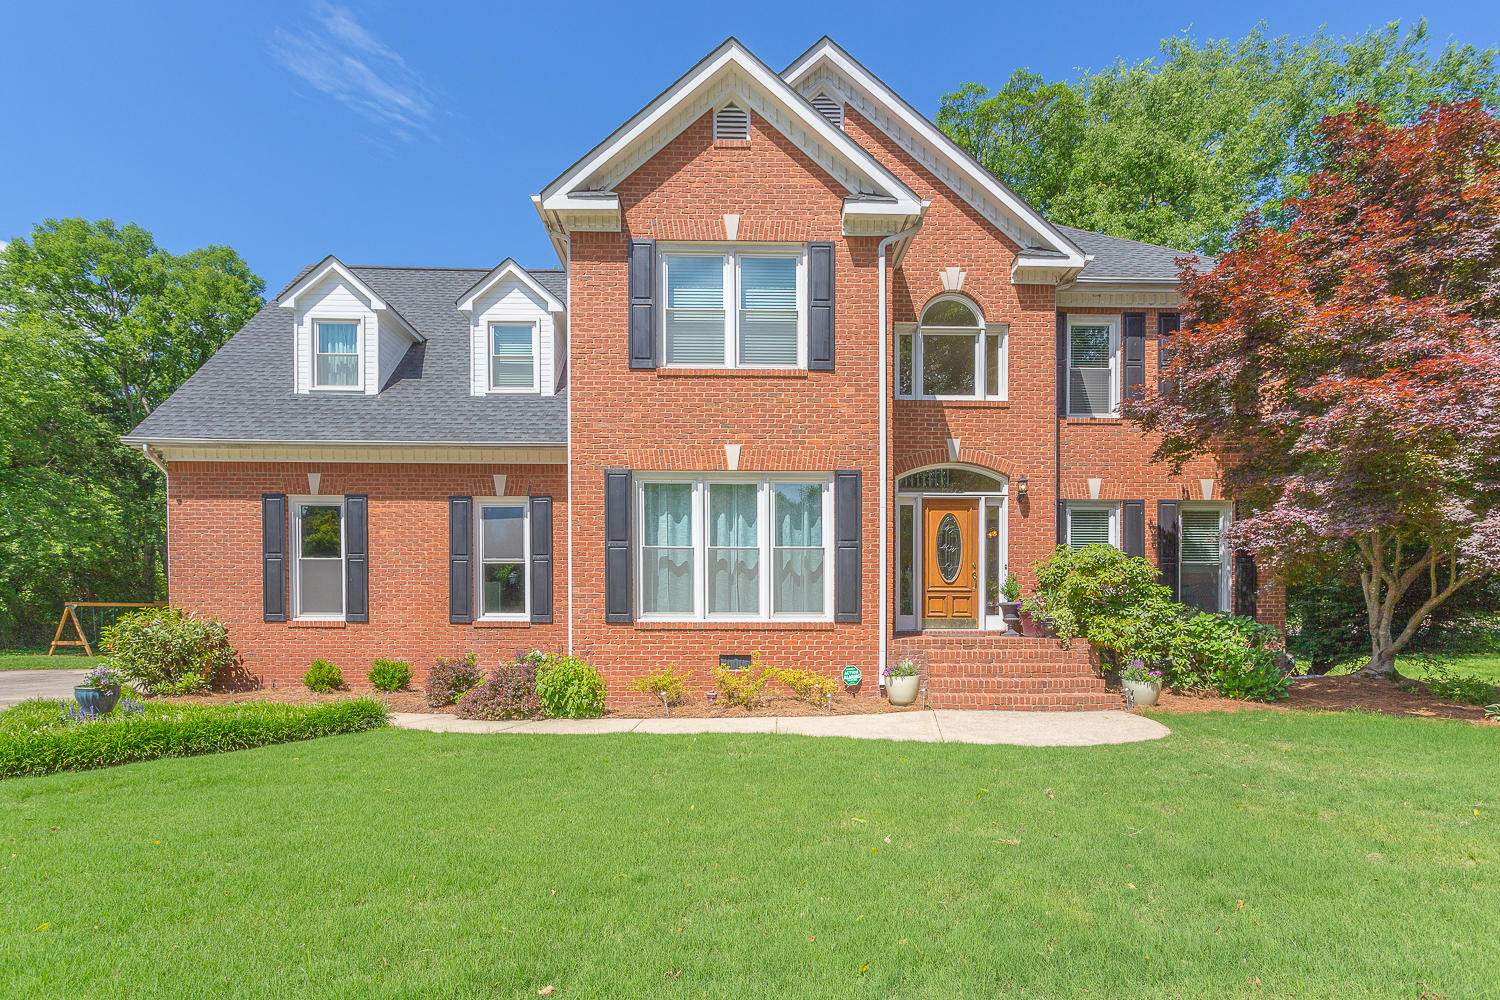 Home in Meadow Trace subdivision under contract in less than 1 day!!